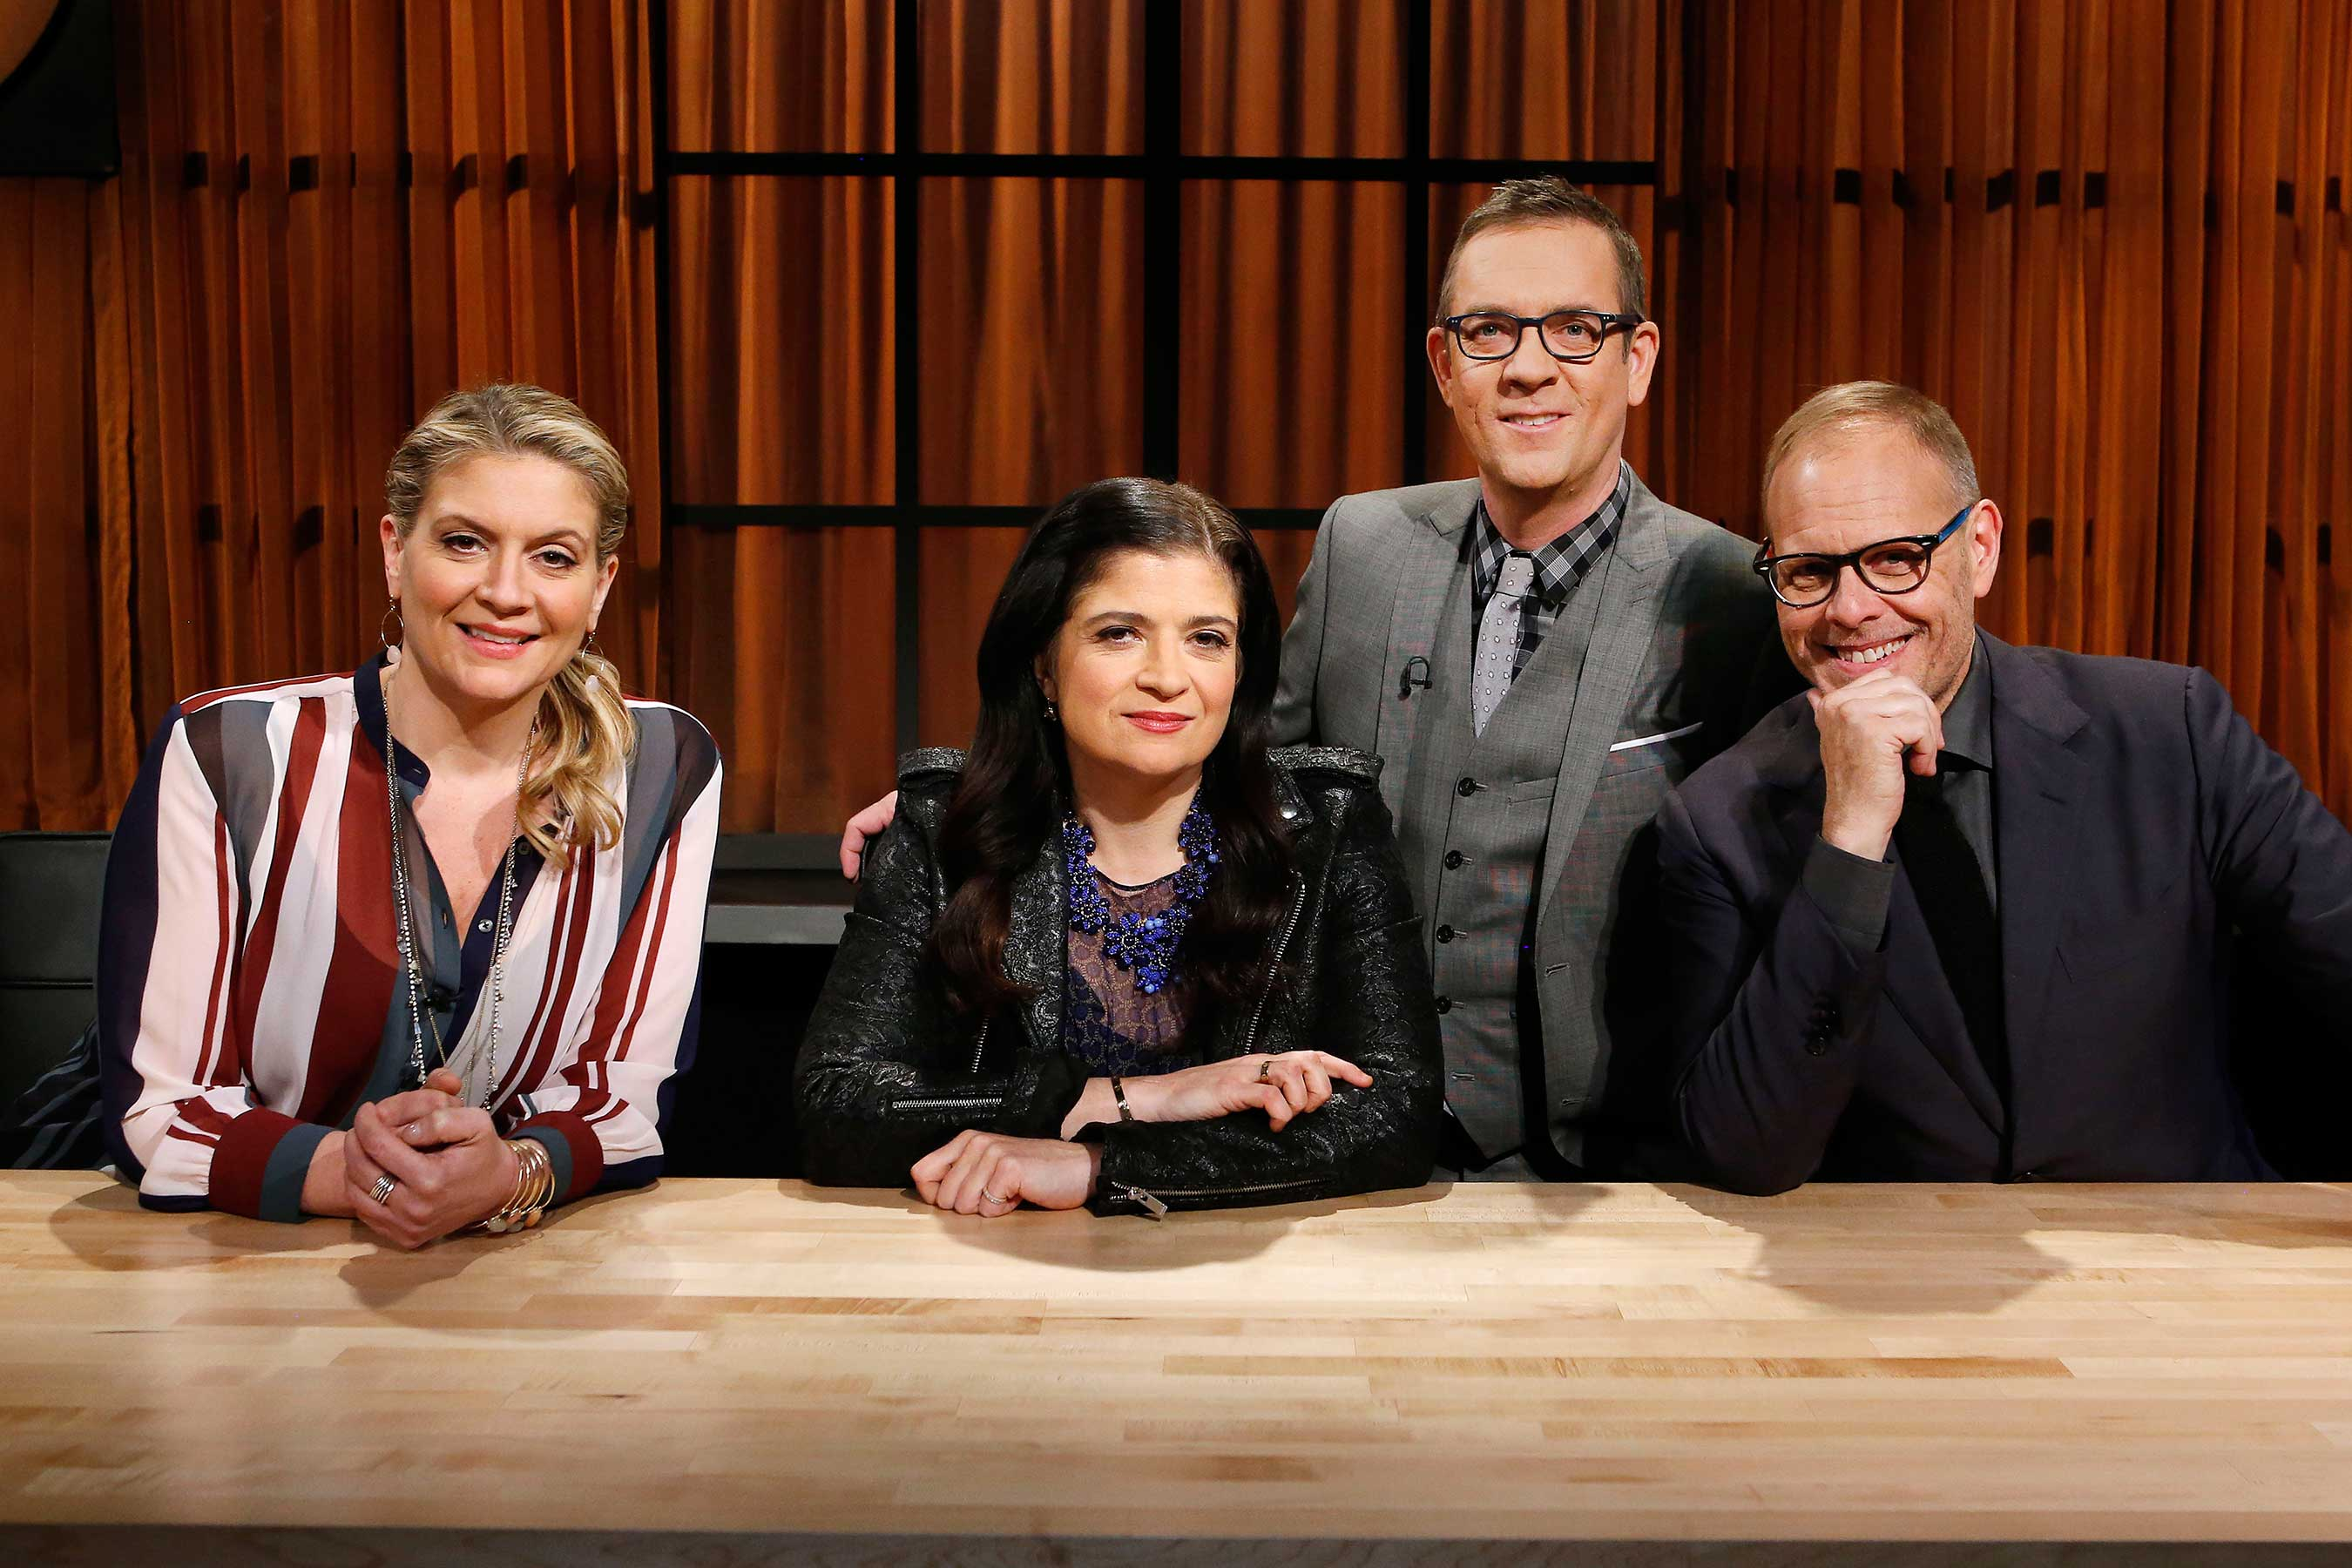 Pictured are `Chopped: Alton's Challenge` judges Amanda Freitag, Alex Guarnaschelli and Alton Brown, with host Ted Allen. (Food Network photo)